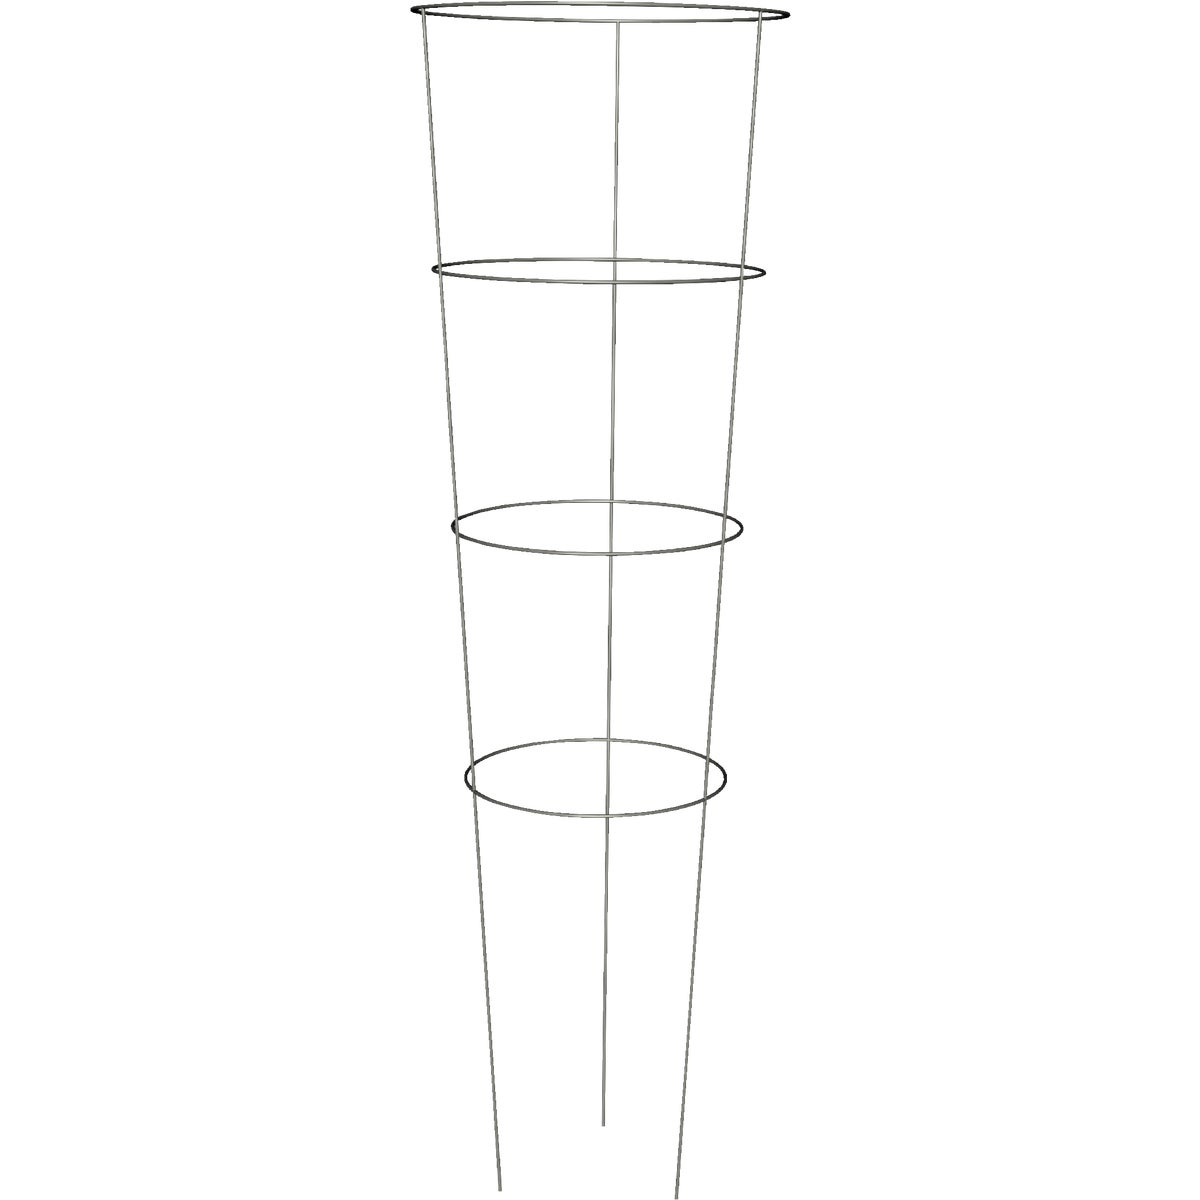 """4R/3L 42"""" TOMATO CAGE - 89729 by Panacea Products"""